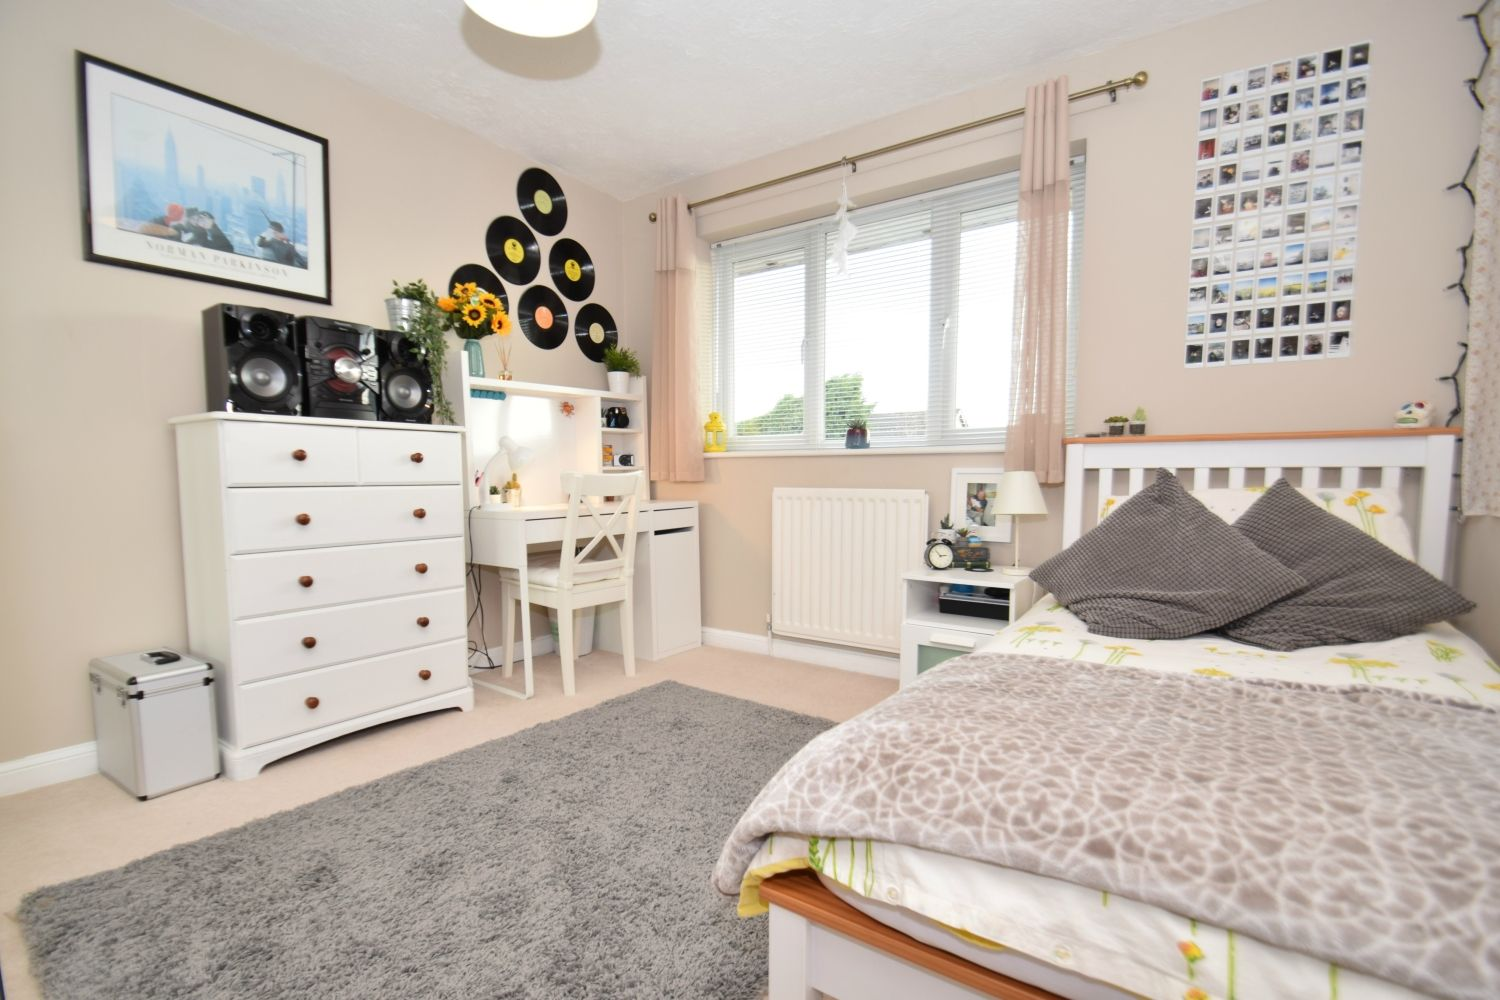 3 bed detached for sale in Foxes Close, Blackwell, B60  - Property Image 14